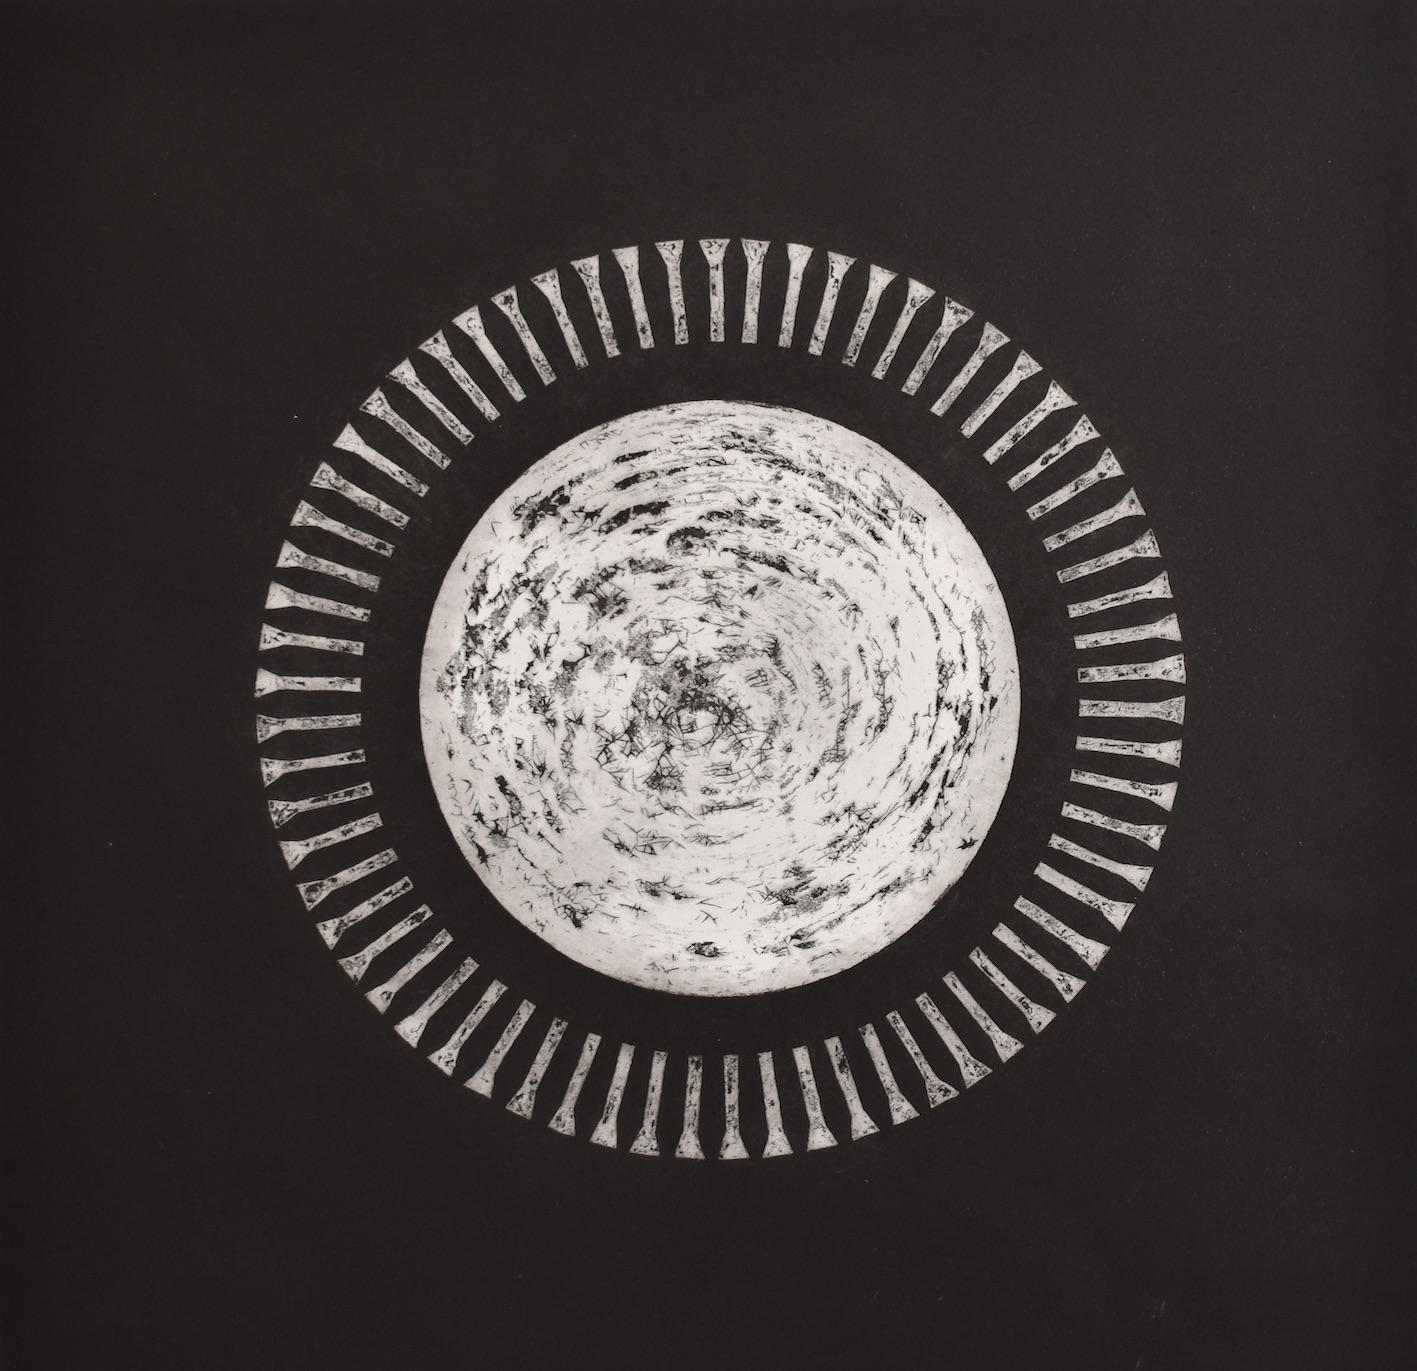 Fig 5, 'Design of the Panopticon: Chaos', Aquatint etching, 76 x 56 cm, 2011